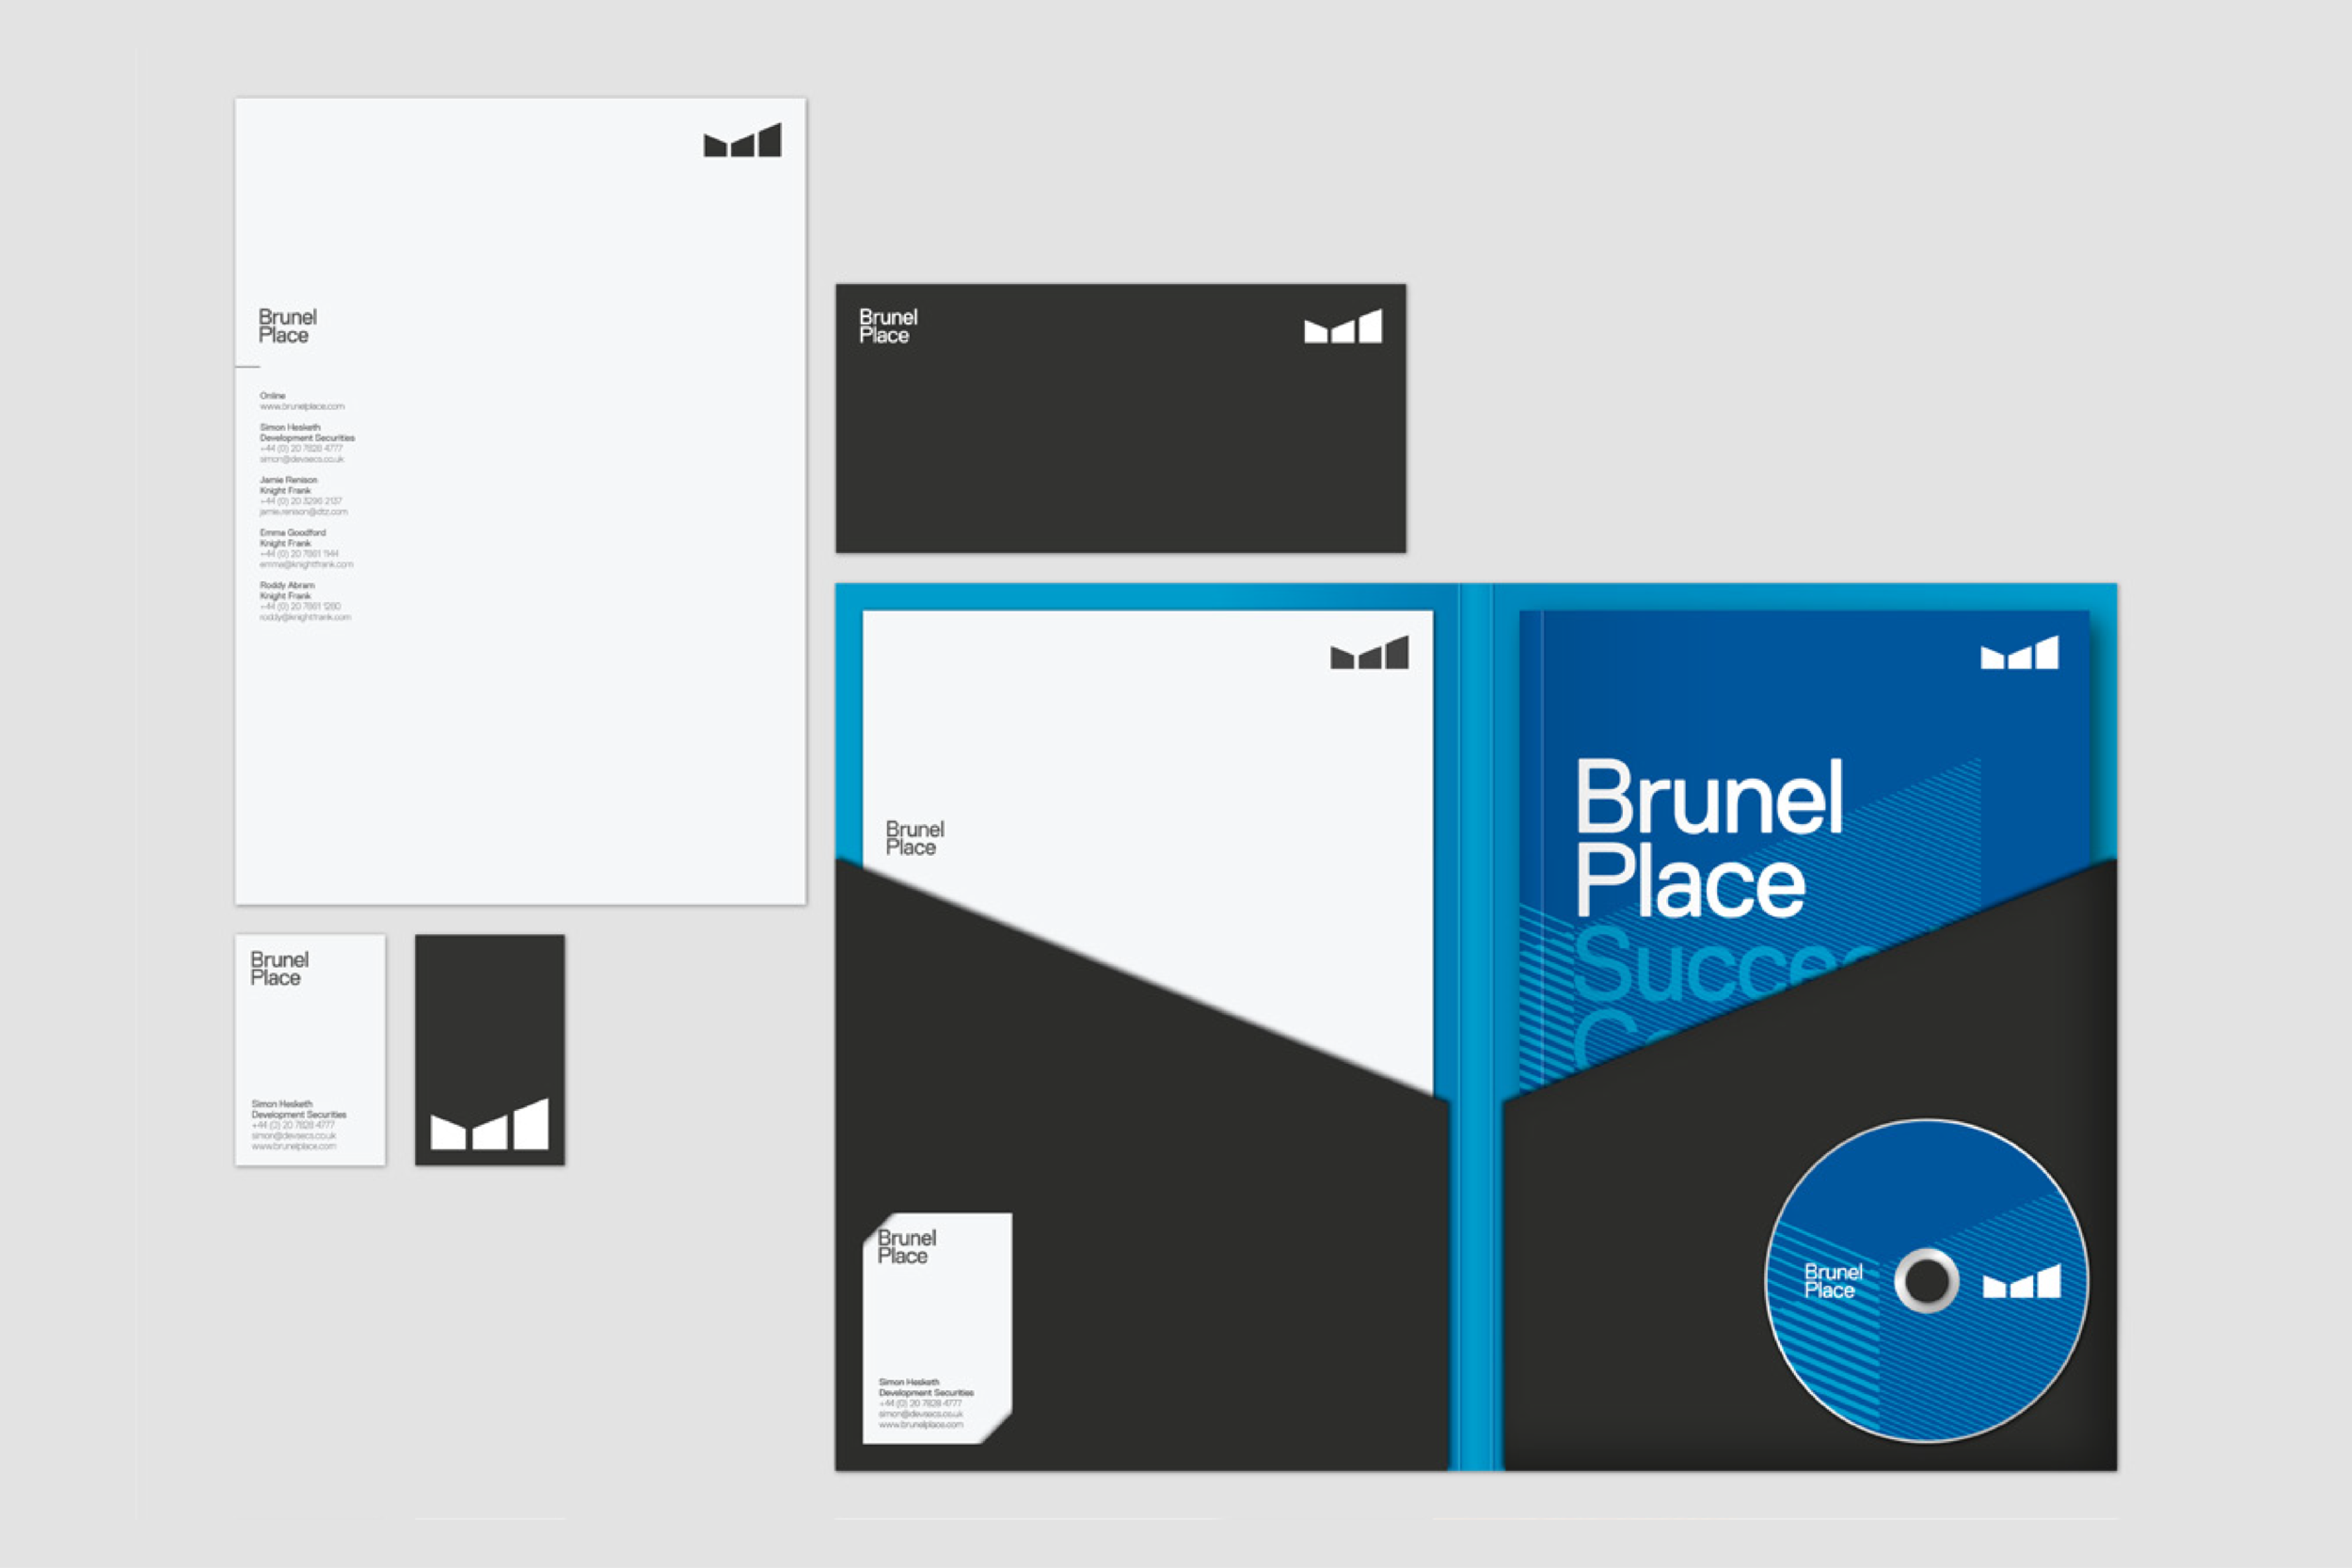 Brunel_Place_identity5.png